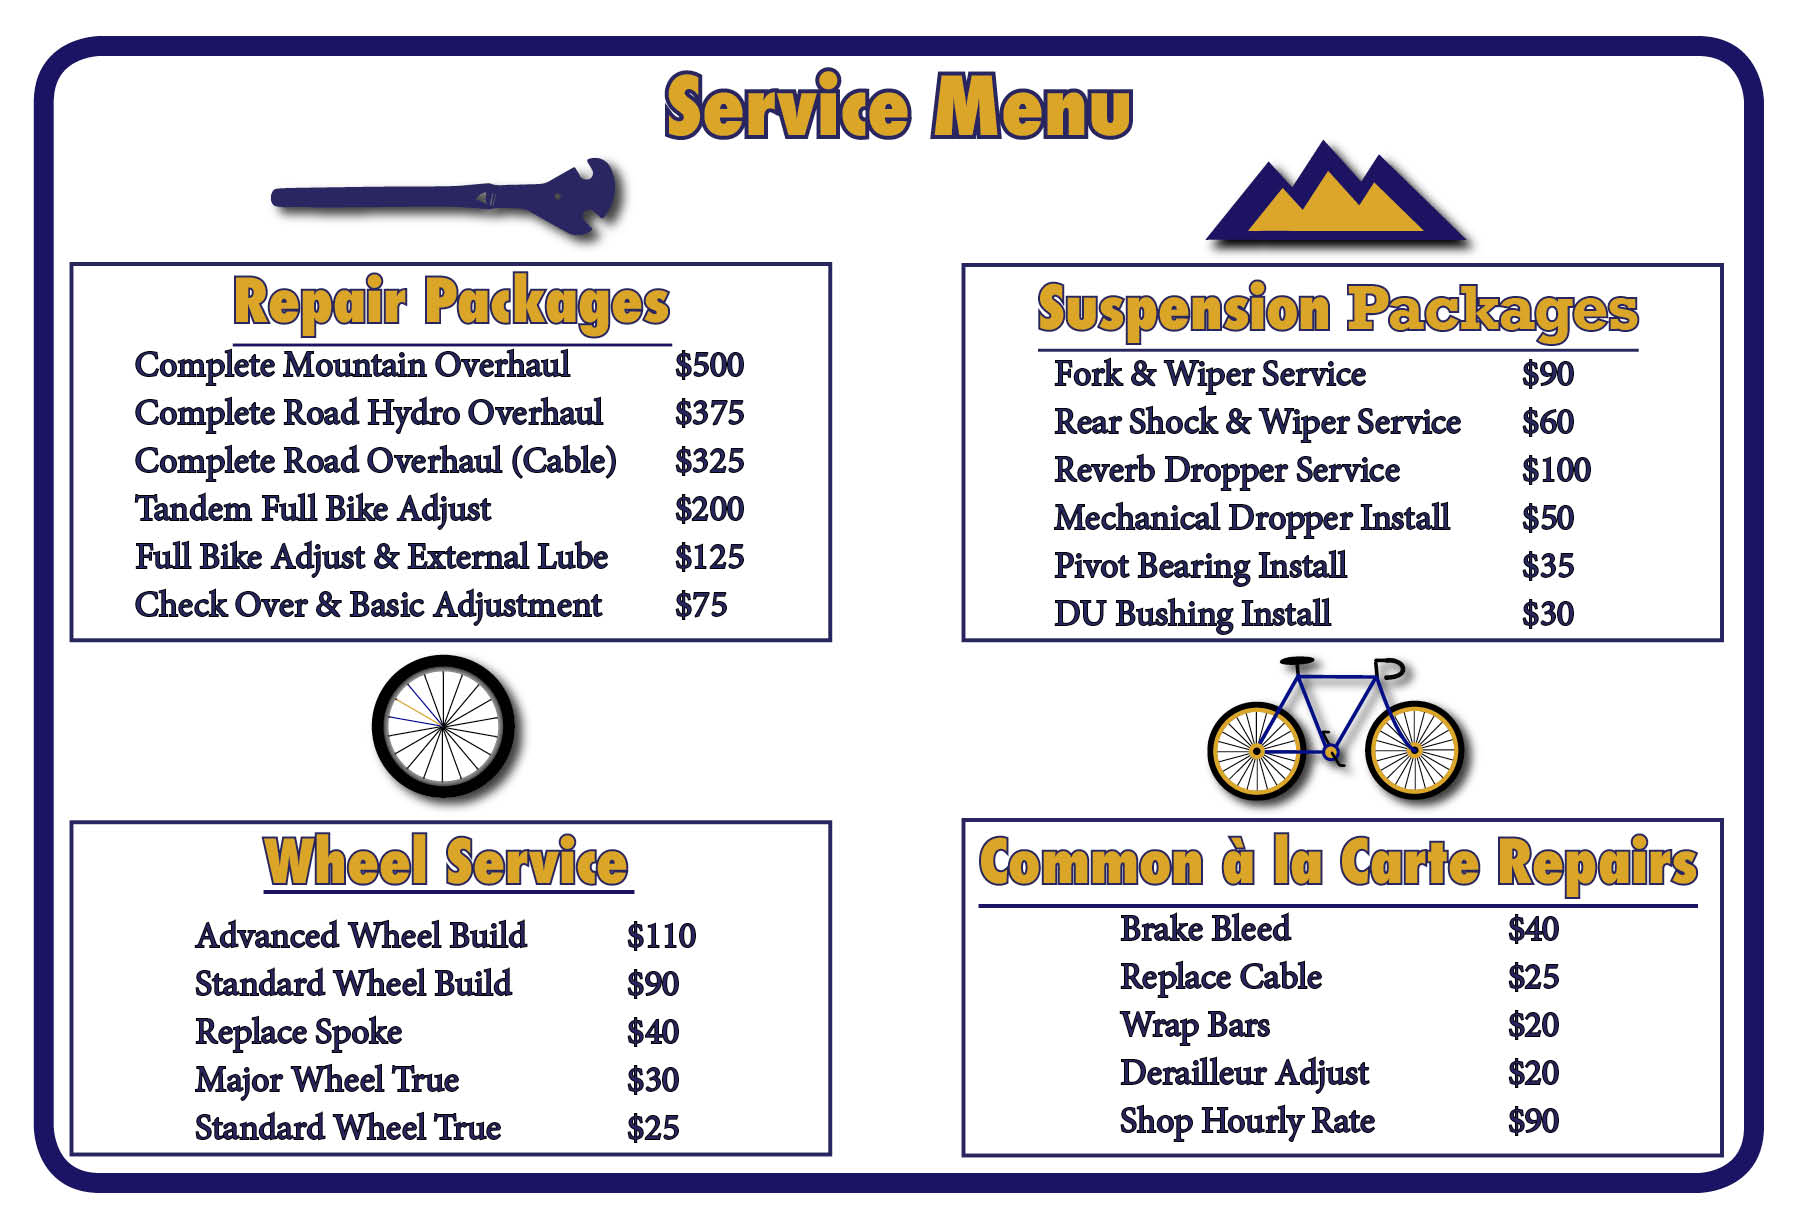 Graphic showing prices for suspension packages, repair packages, wheel services and a la carte repairs.